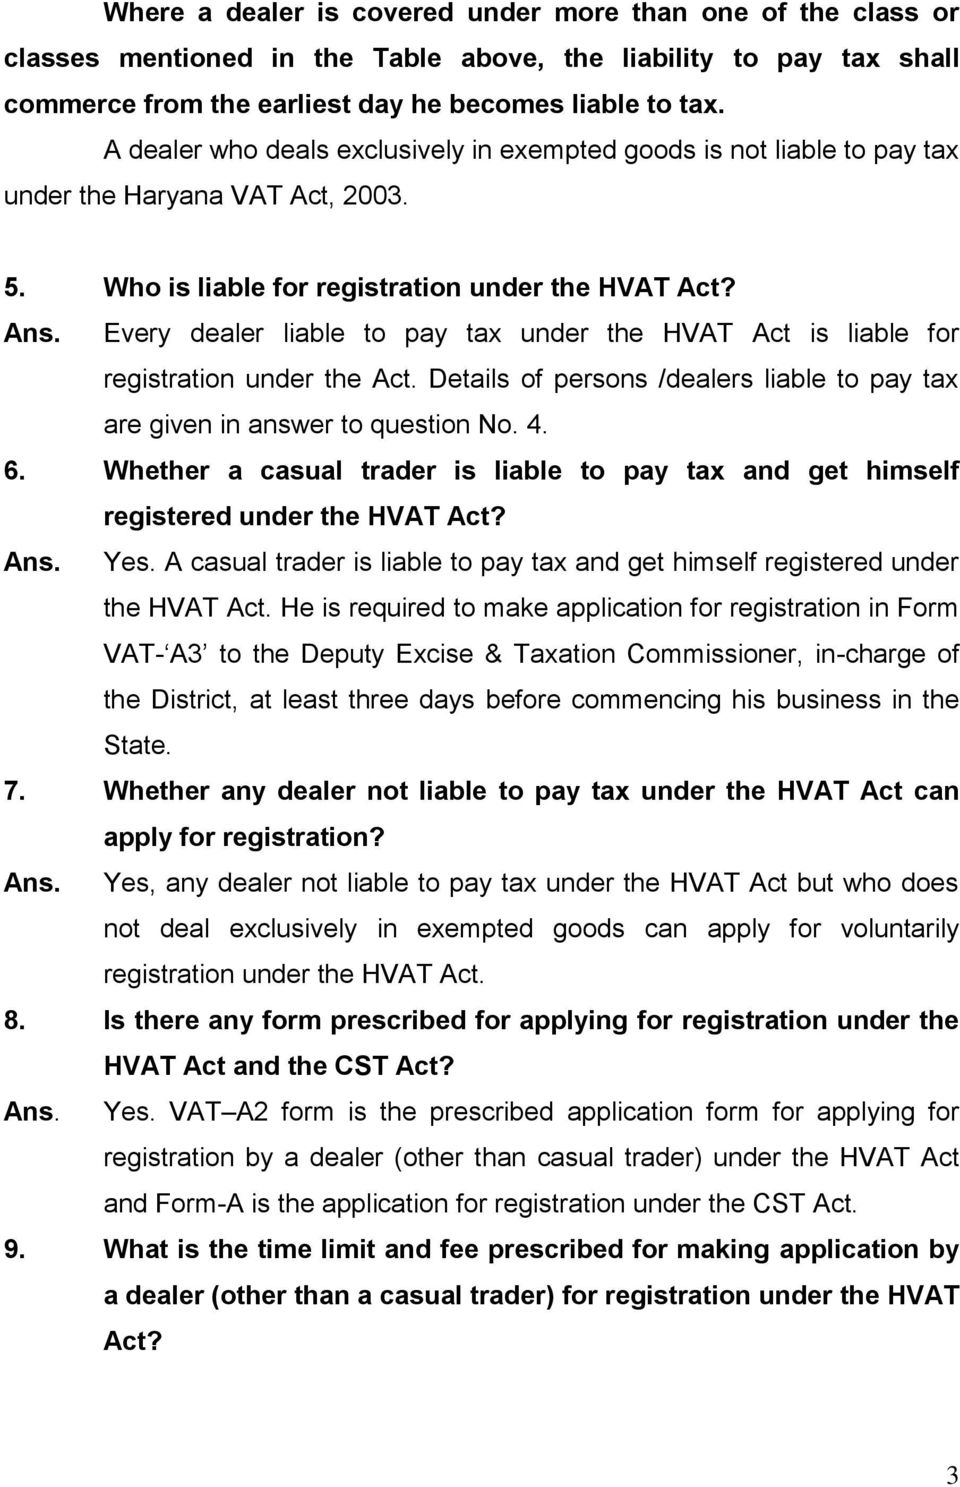 Every dealer liable to pay tax under the HVAT Act is liable for registration under the Act. Details of persons /dealers liable to pay tax are given in answer to question No. 4. 6.